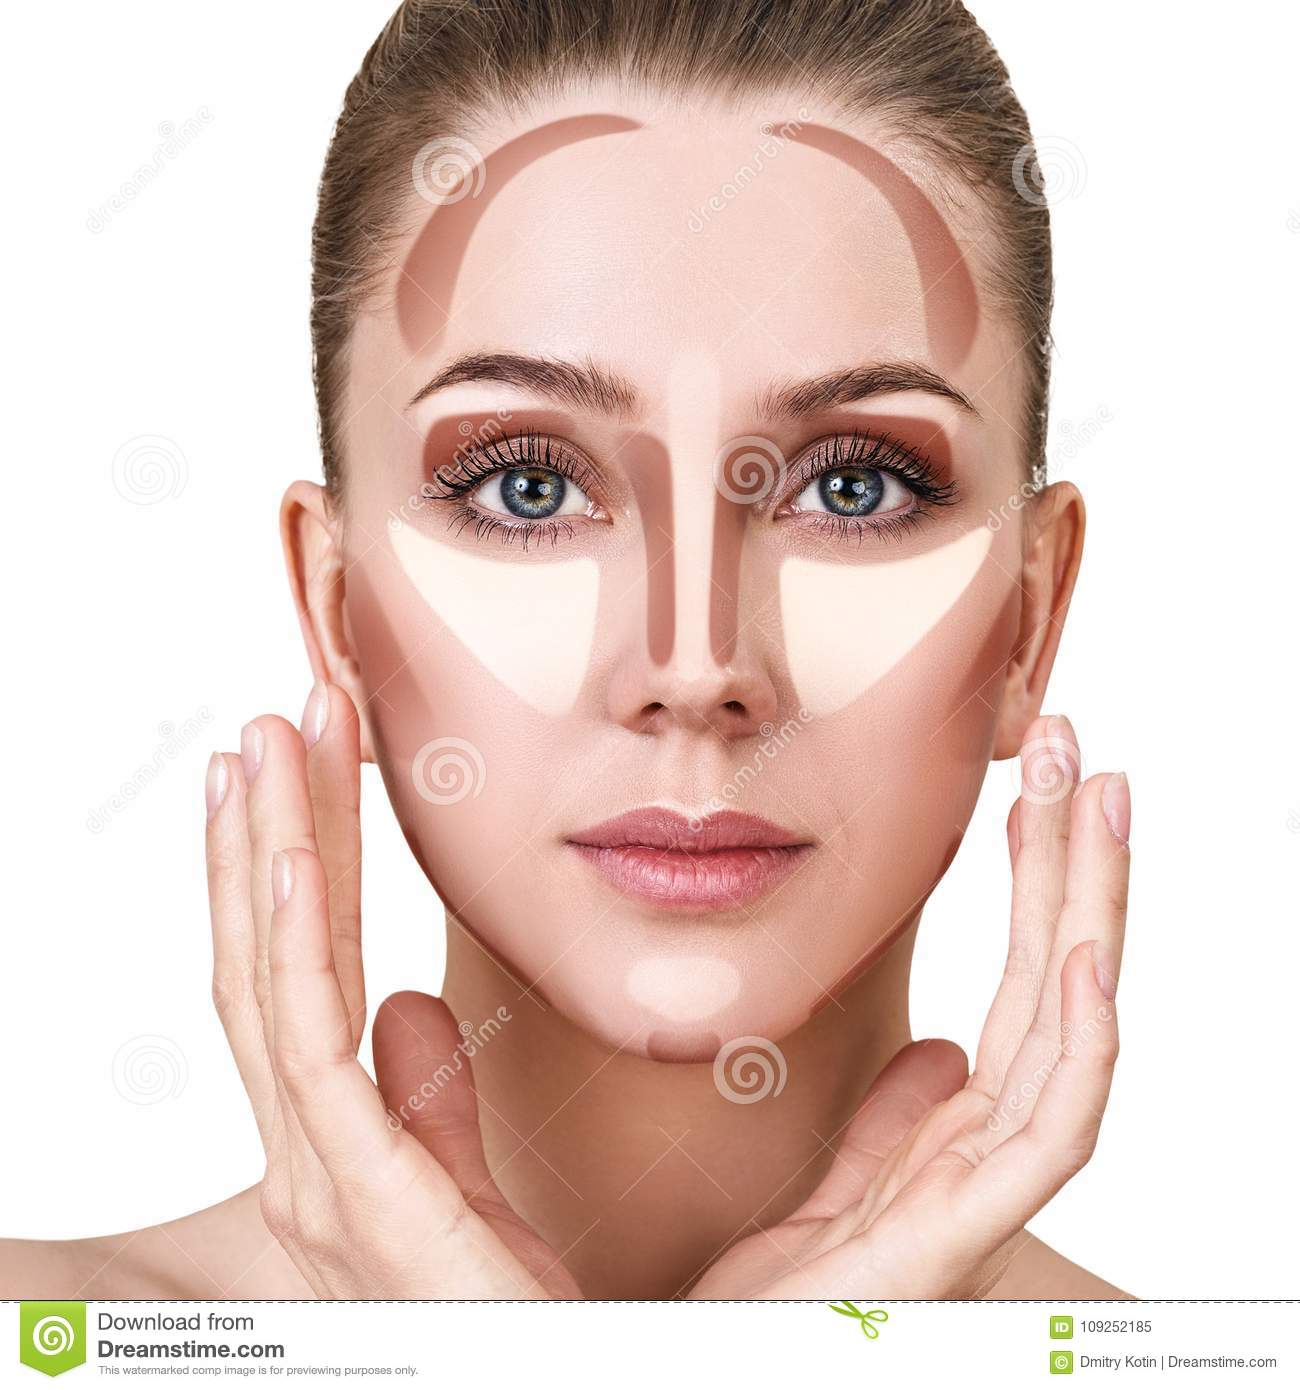 Young Woman With Sample Contouring And Highlight Makeup On Face